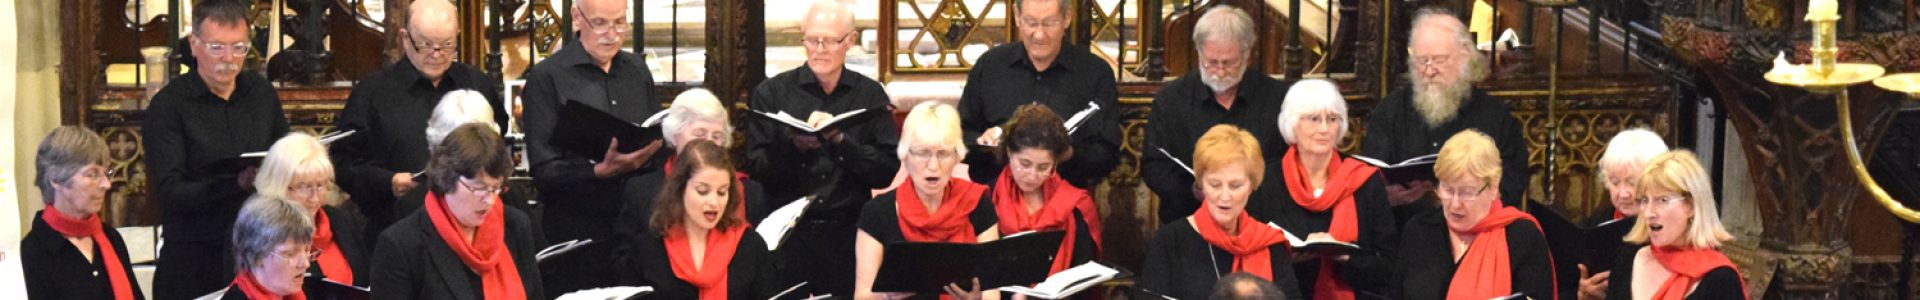 Chorale sings at Croome Court